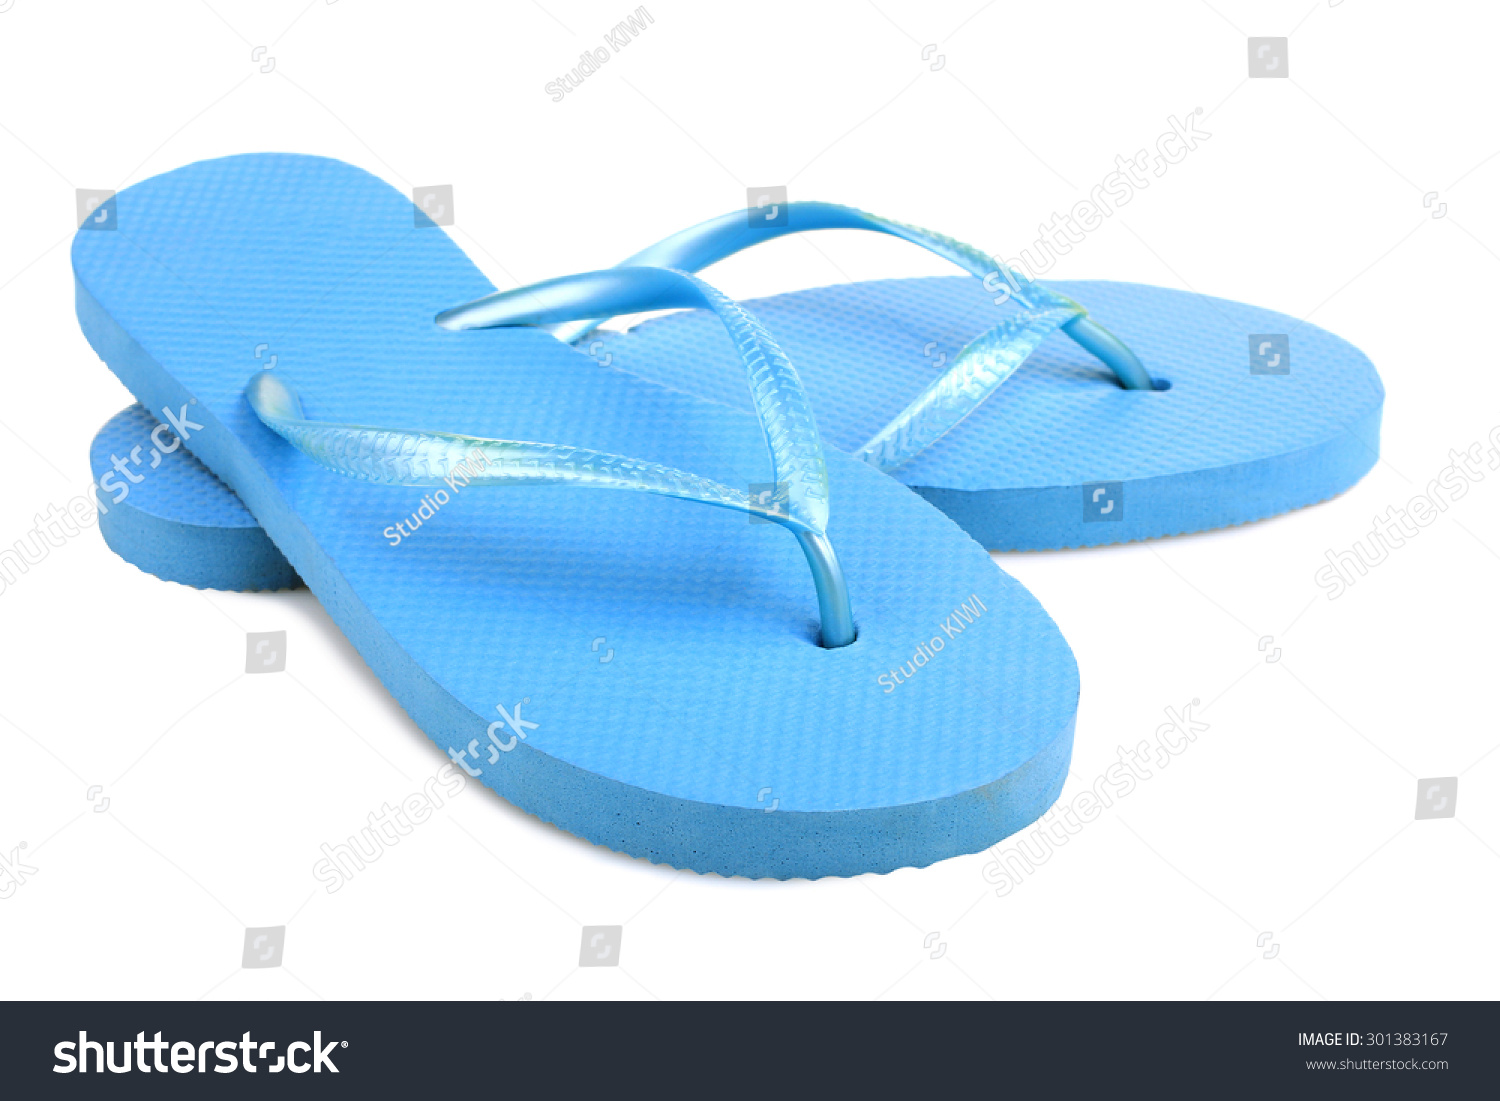 dd1999599b6 Rubber embed with plastic sandal or slipper product with black and yellow  stripes isolated on white